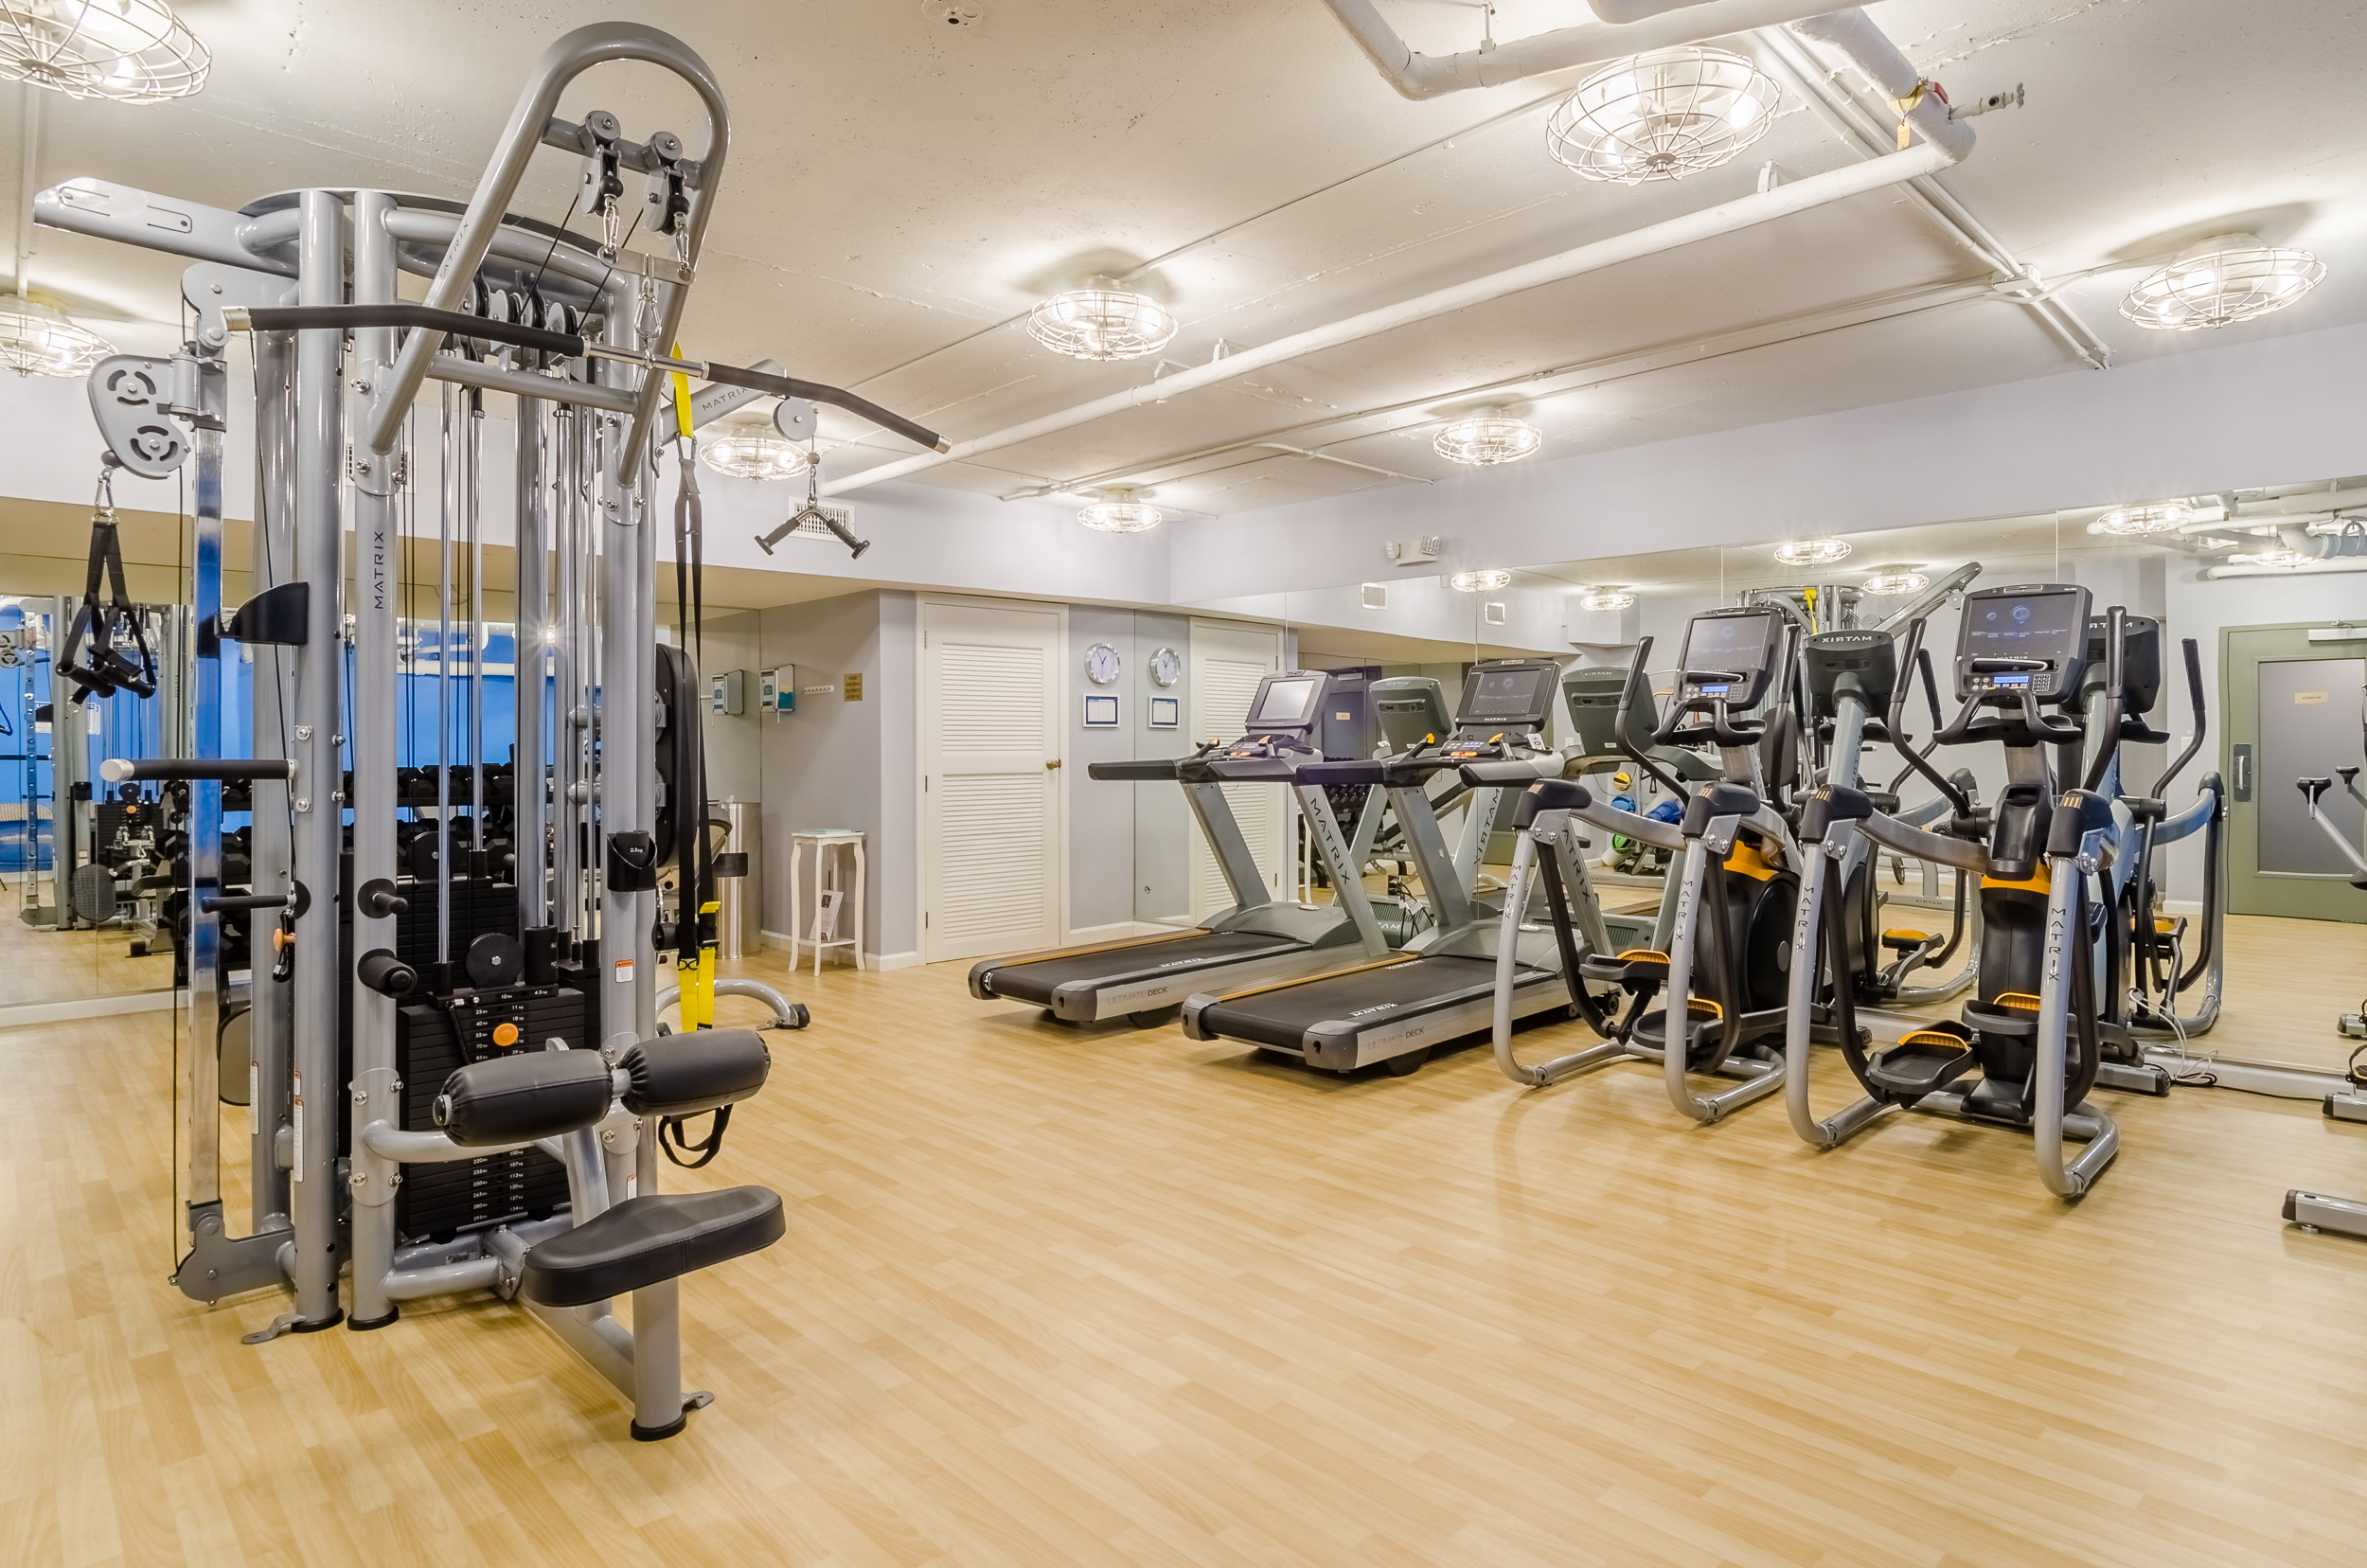 20_Watergate South Fitness Center 01.jpg